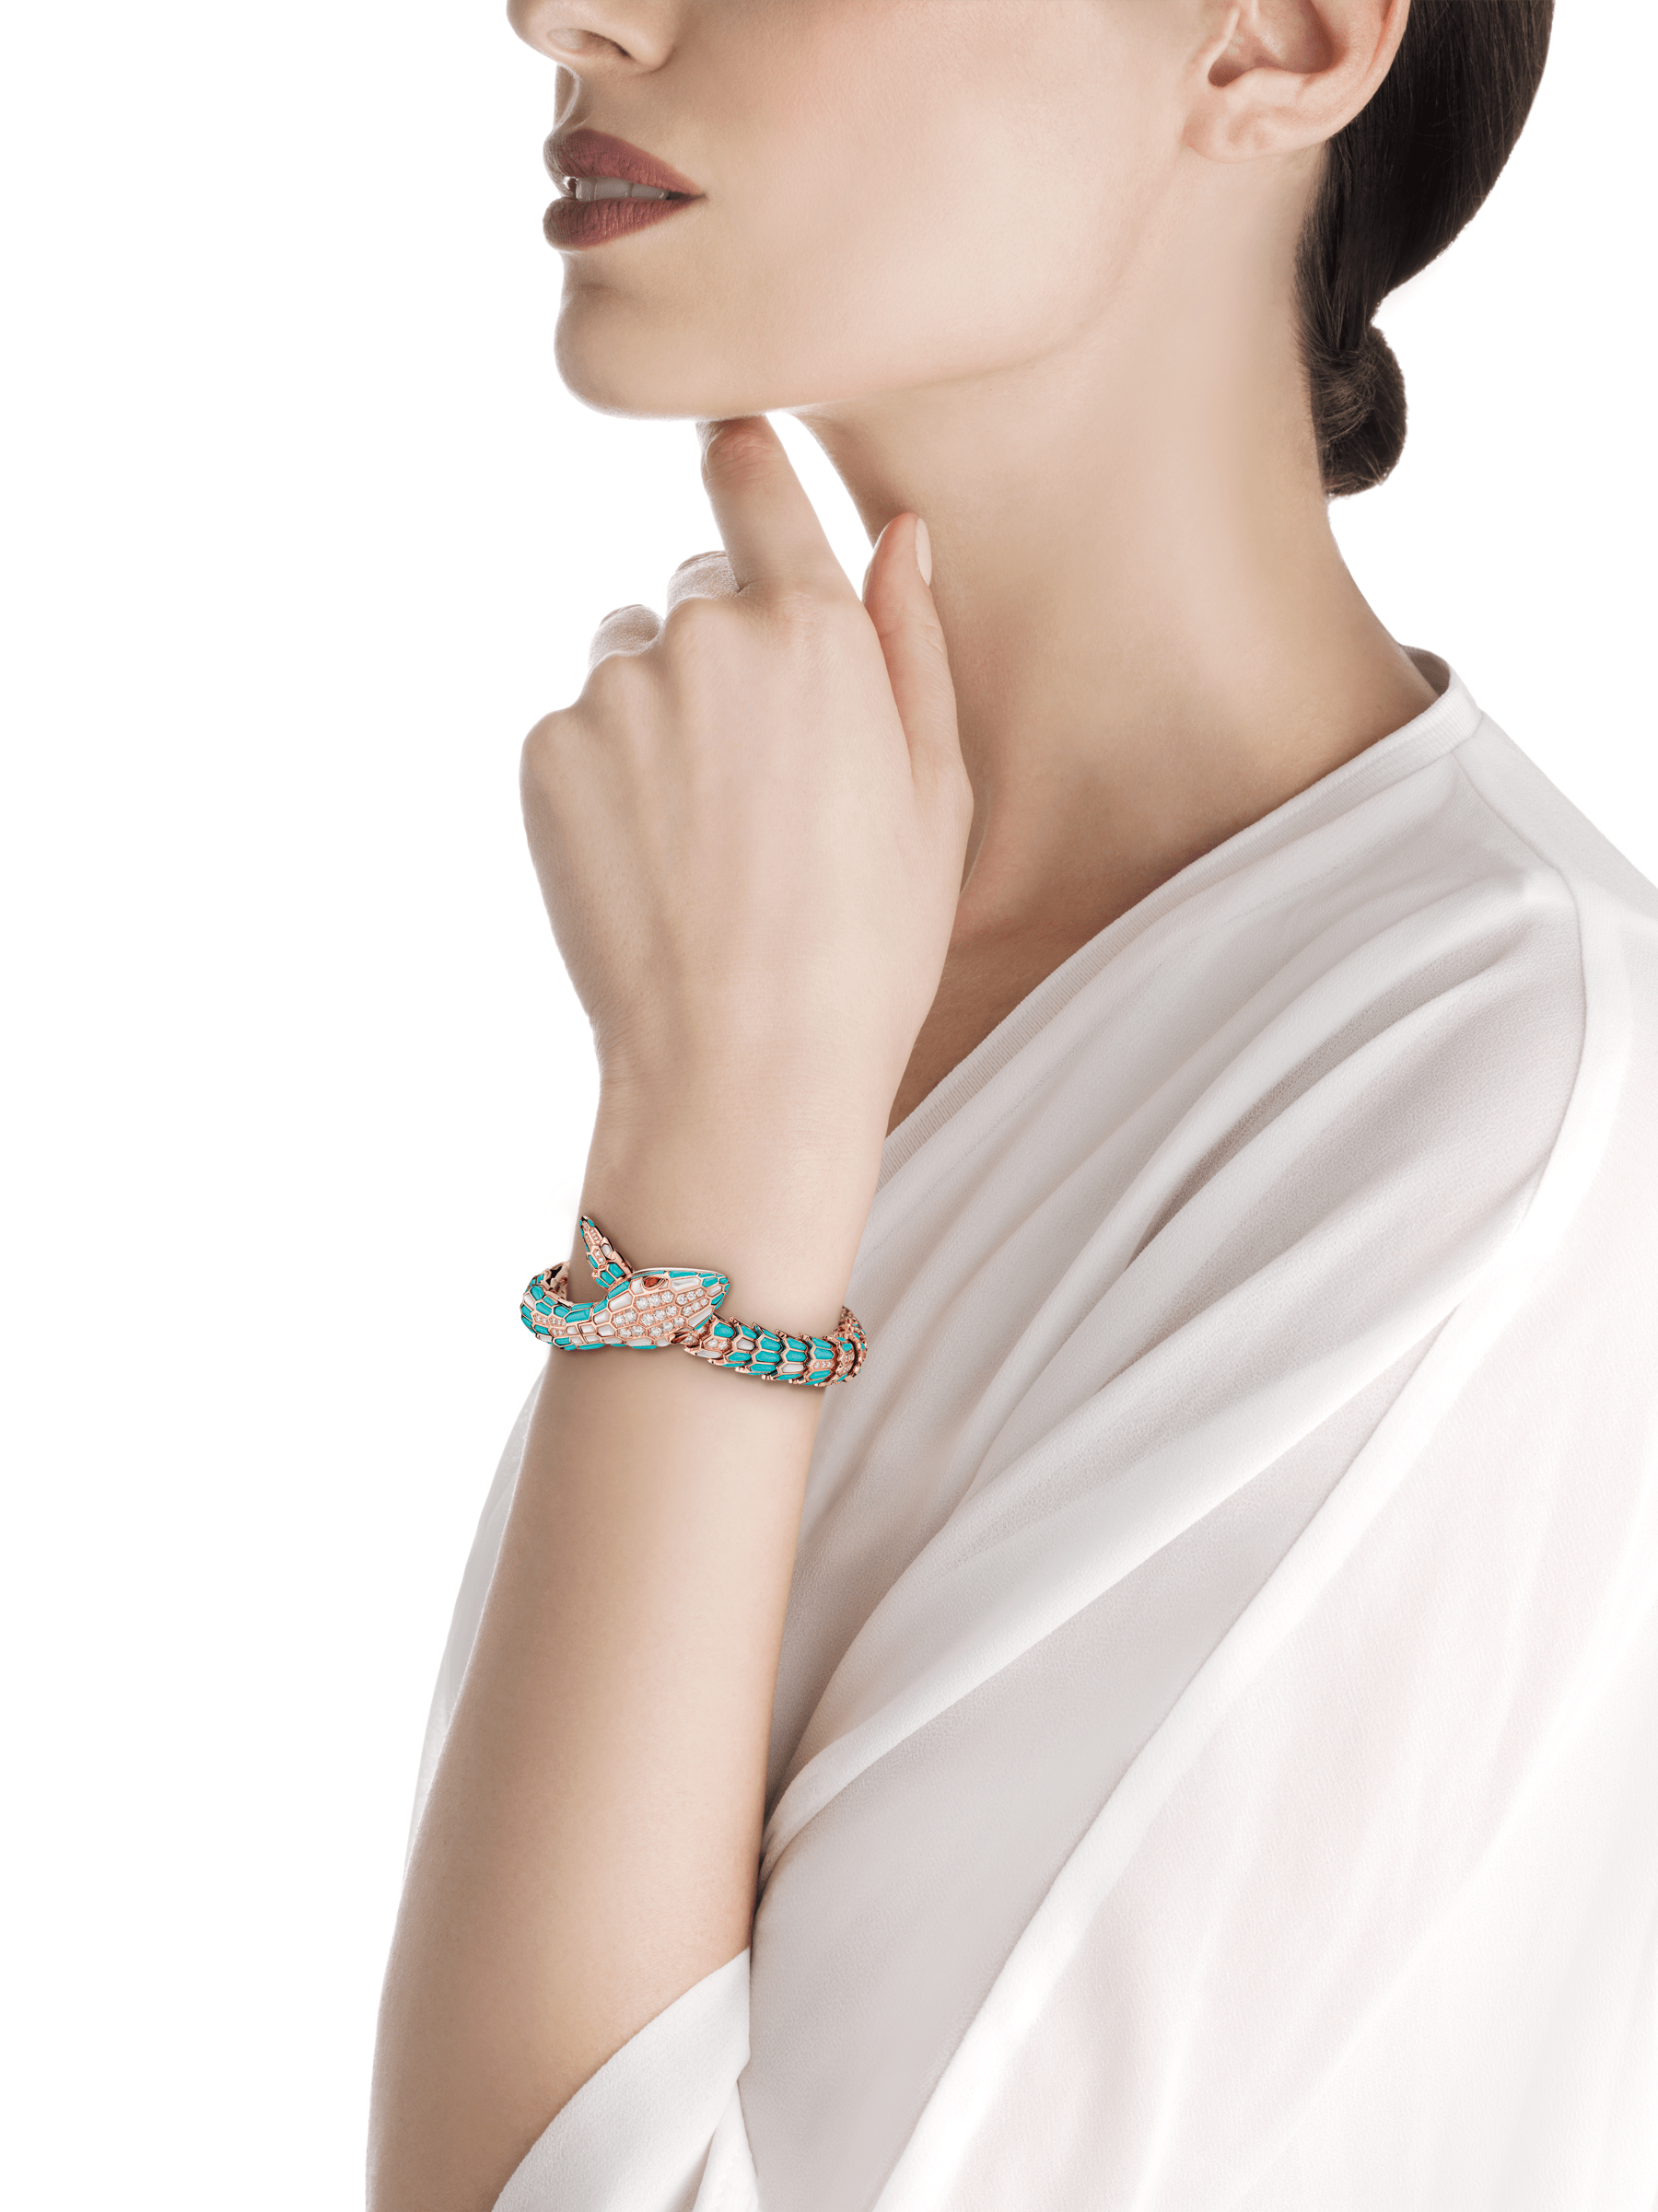 Serpenti Secret Watch with 18 kt rose gold head and single spiral bracelet, both set with brilliant cut diamonds, turquoise and mother-of-pearl elements, ruby eyes, 18 kt rose gold case, 18 kt rose gold dial set with brilliant cut diamonds and mother-of-pearl. 102533 image 3